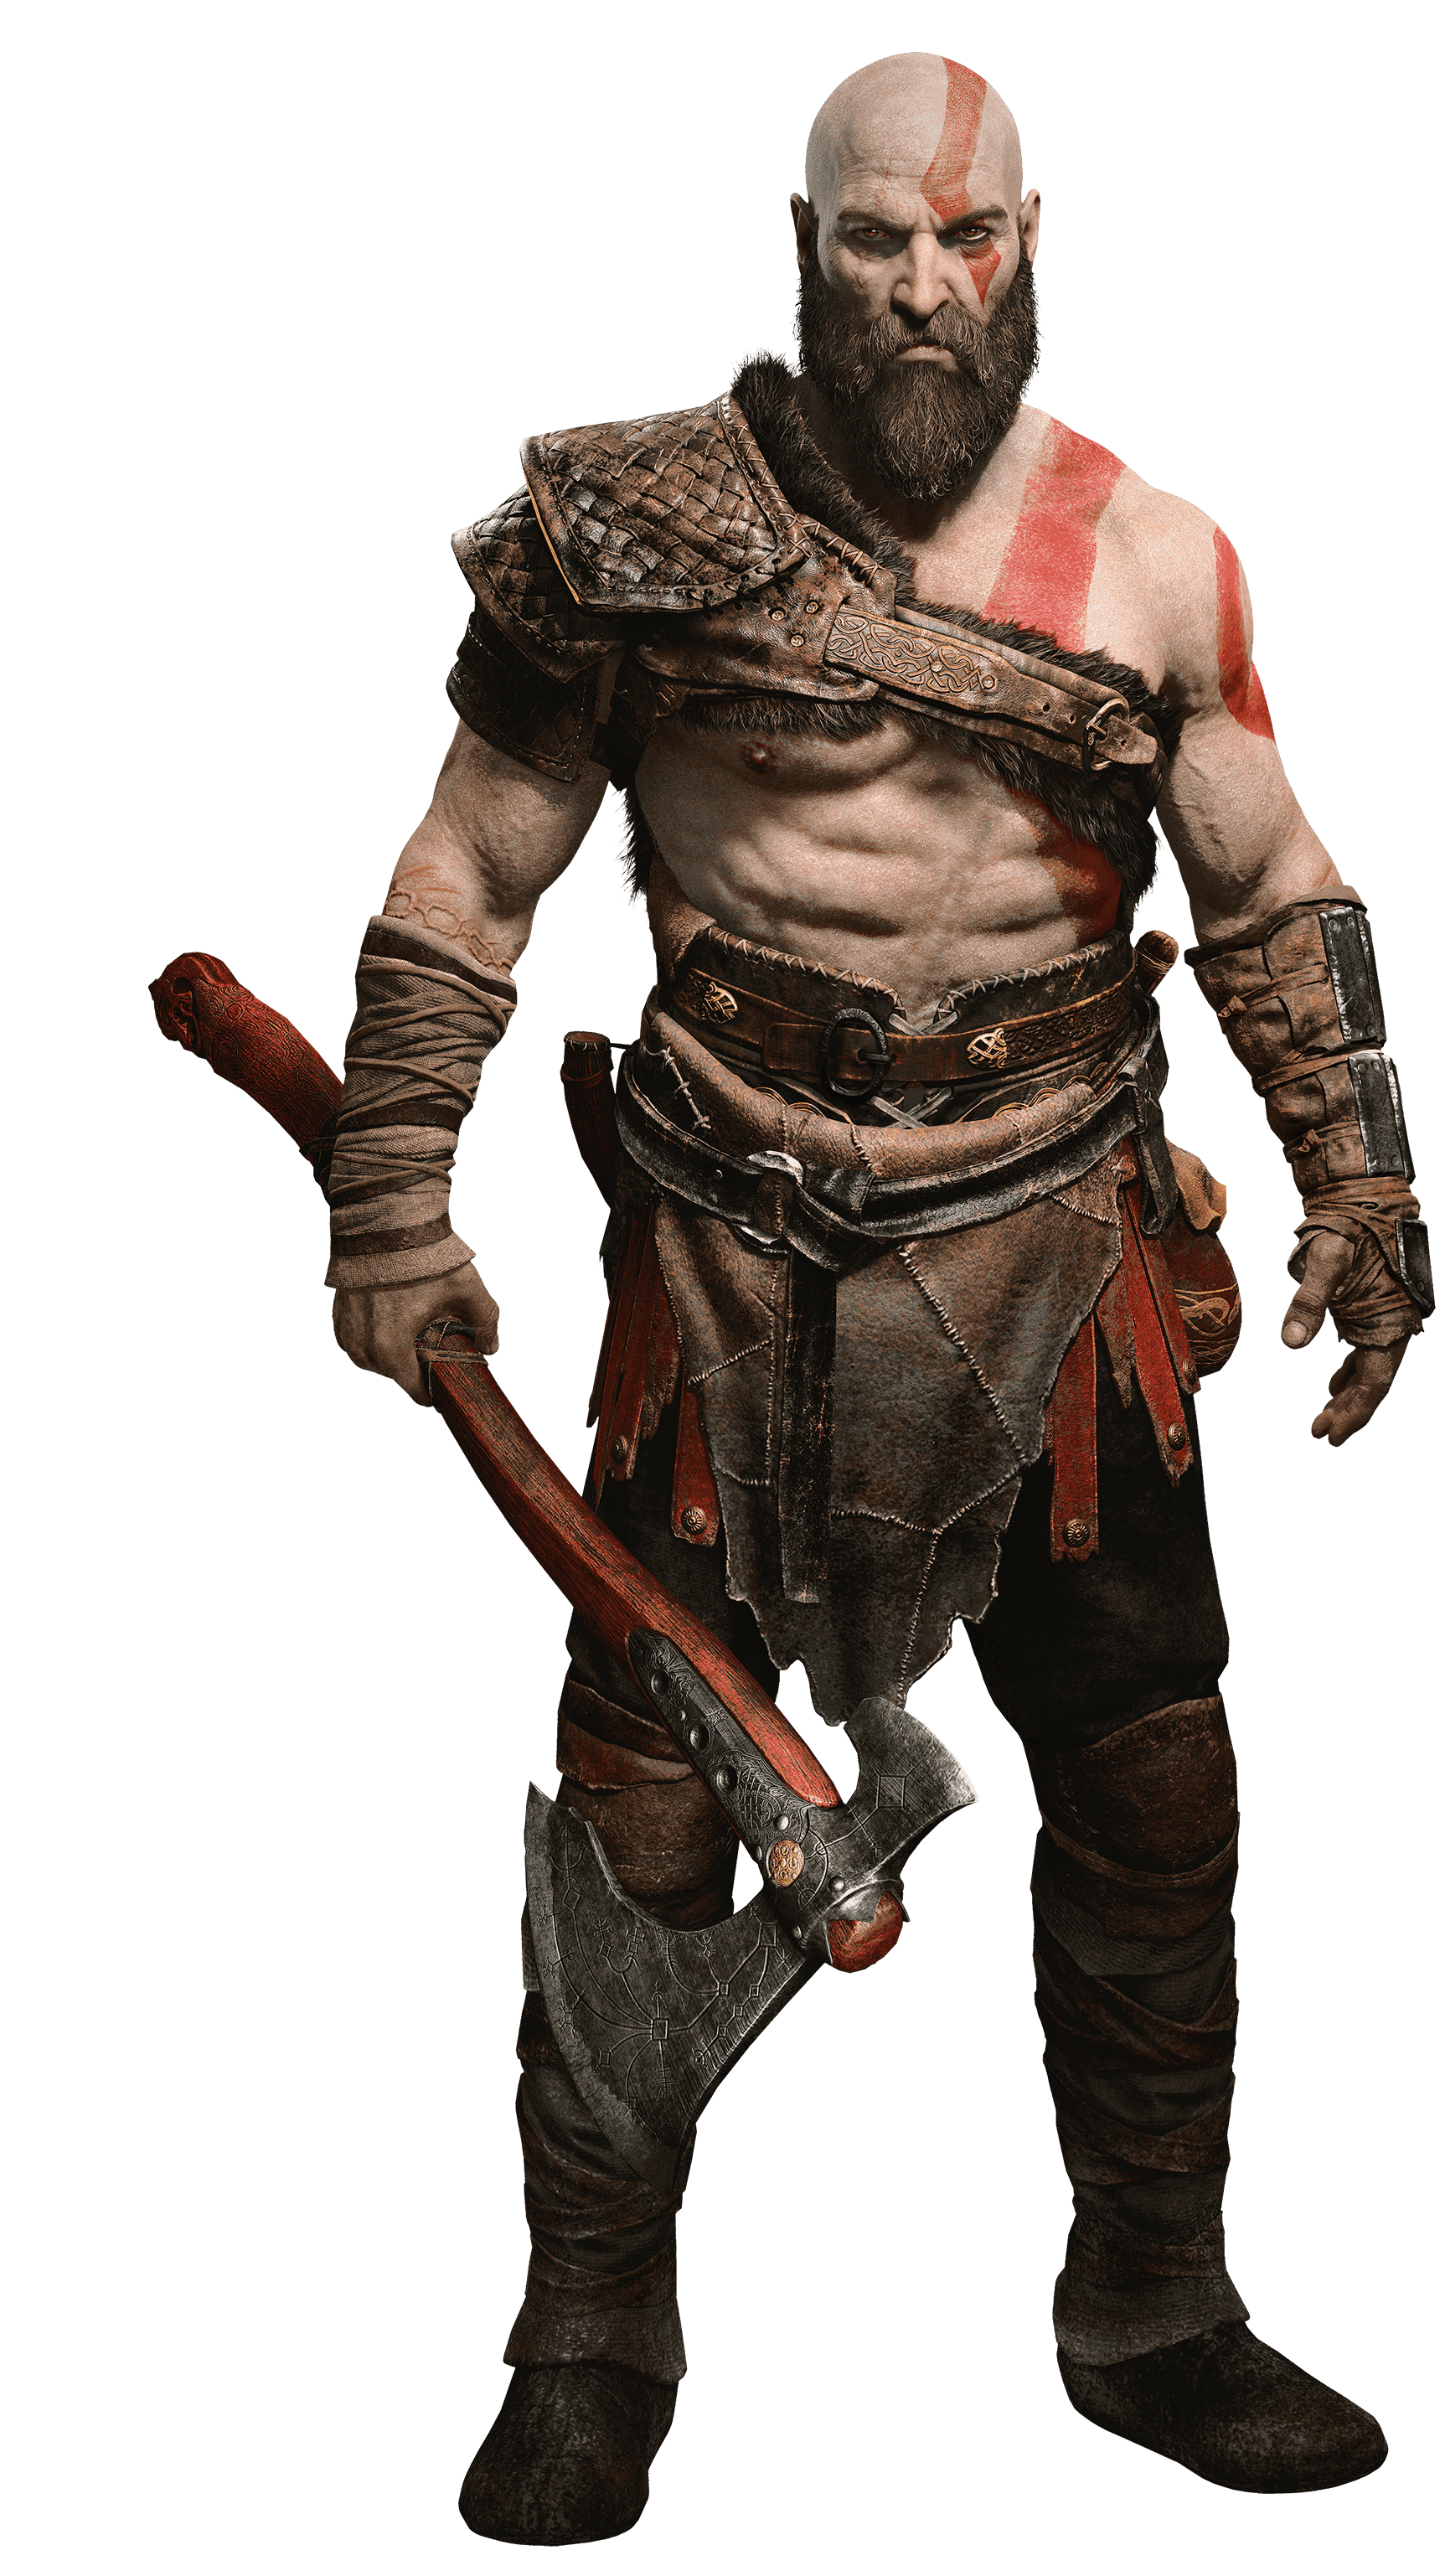 God of war 2017 png. Kratospng